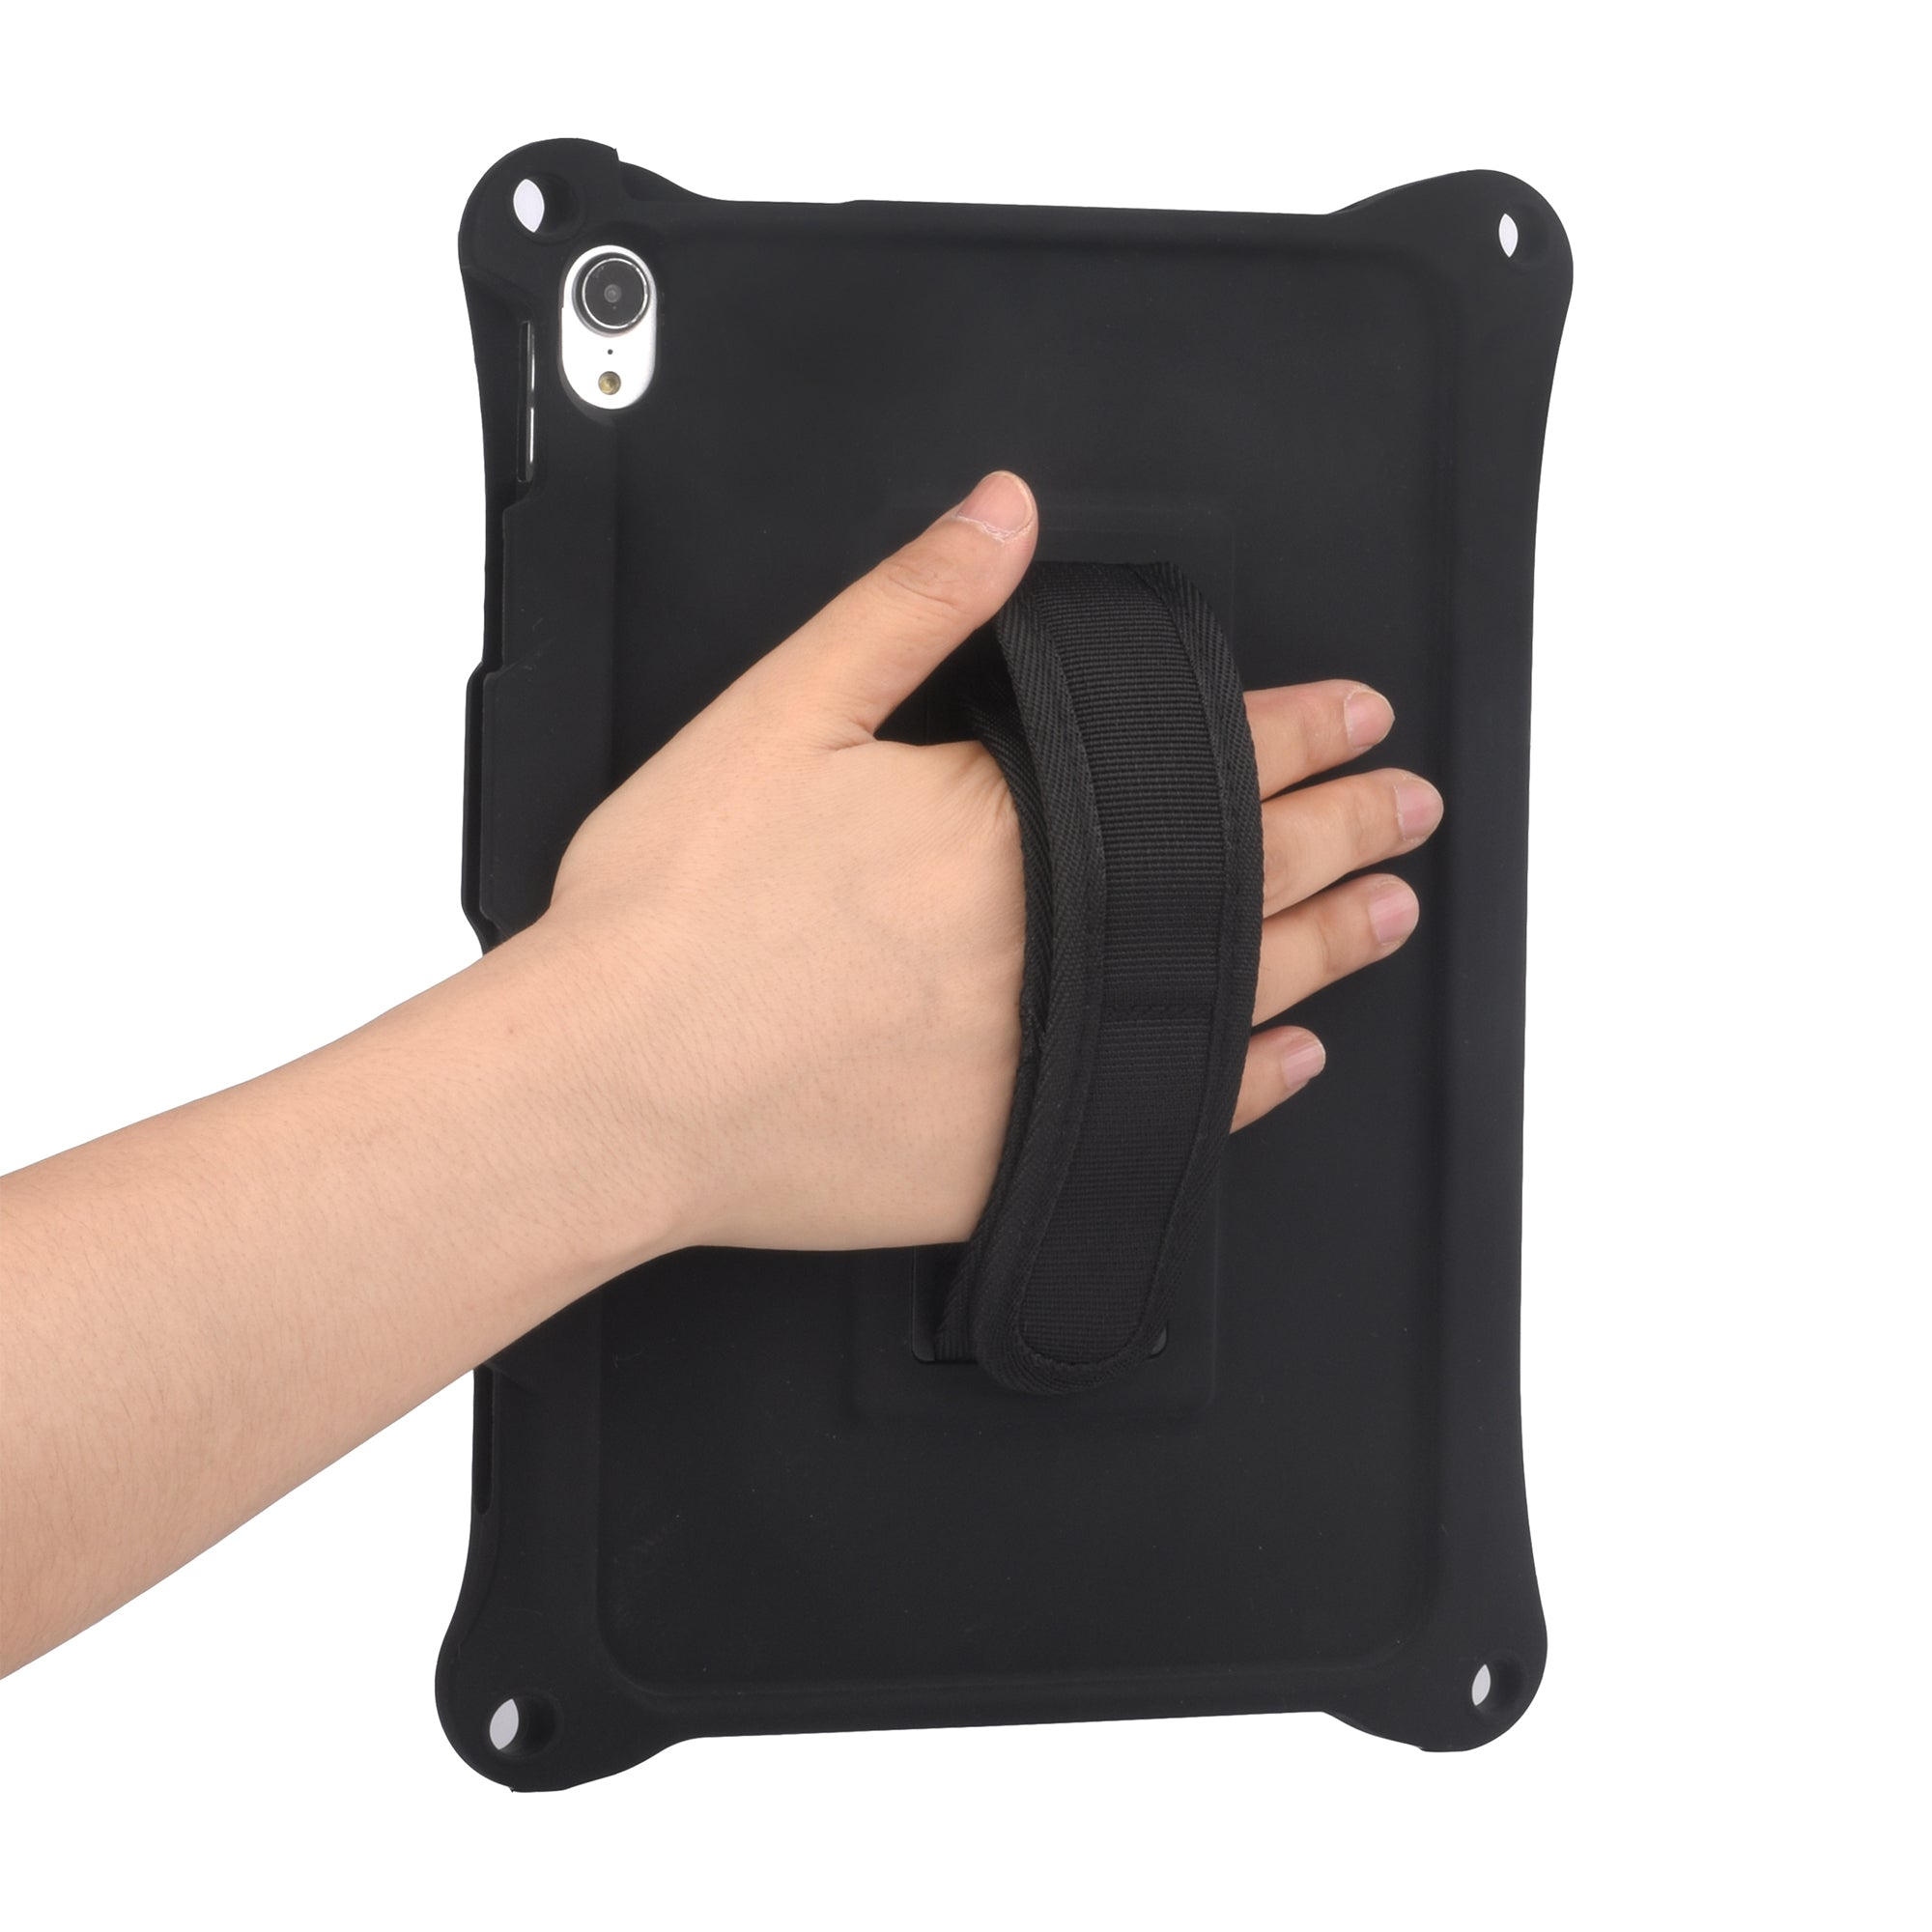 Cooper Bounce Strap Rugged Silicon case with Strap & Kickstand for iPad Pro 11